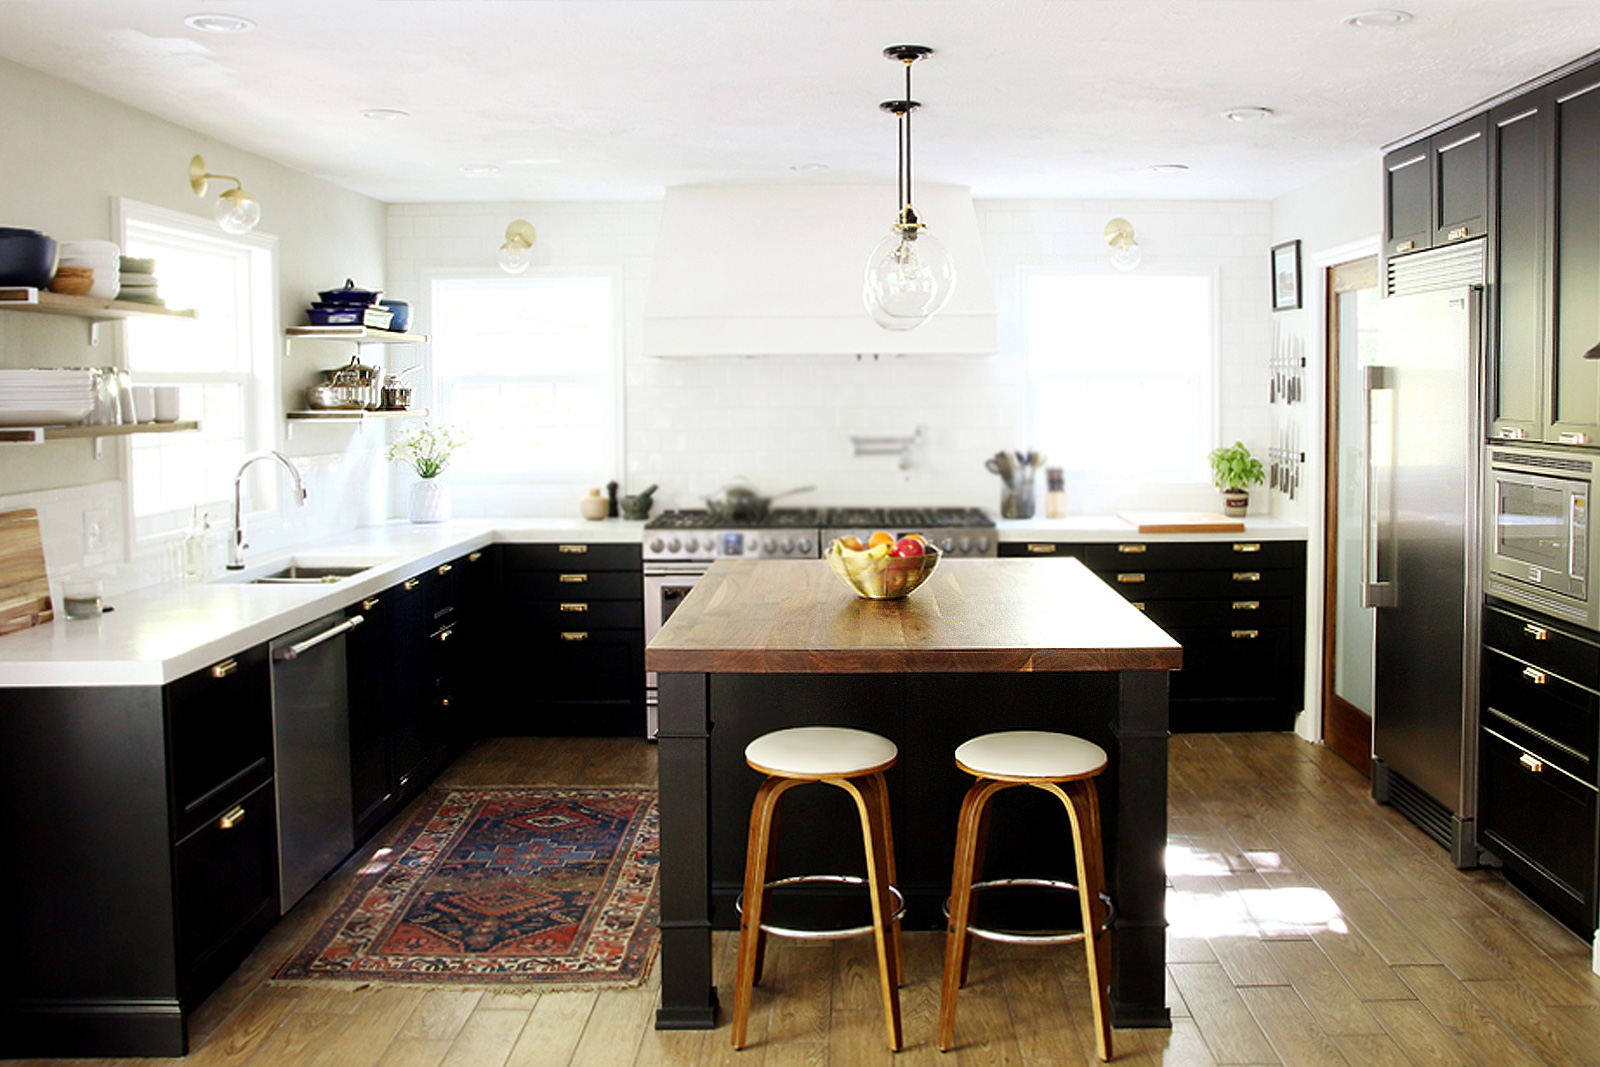 Updated kitchen with black cabinets, white countertops